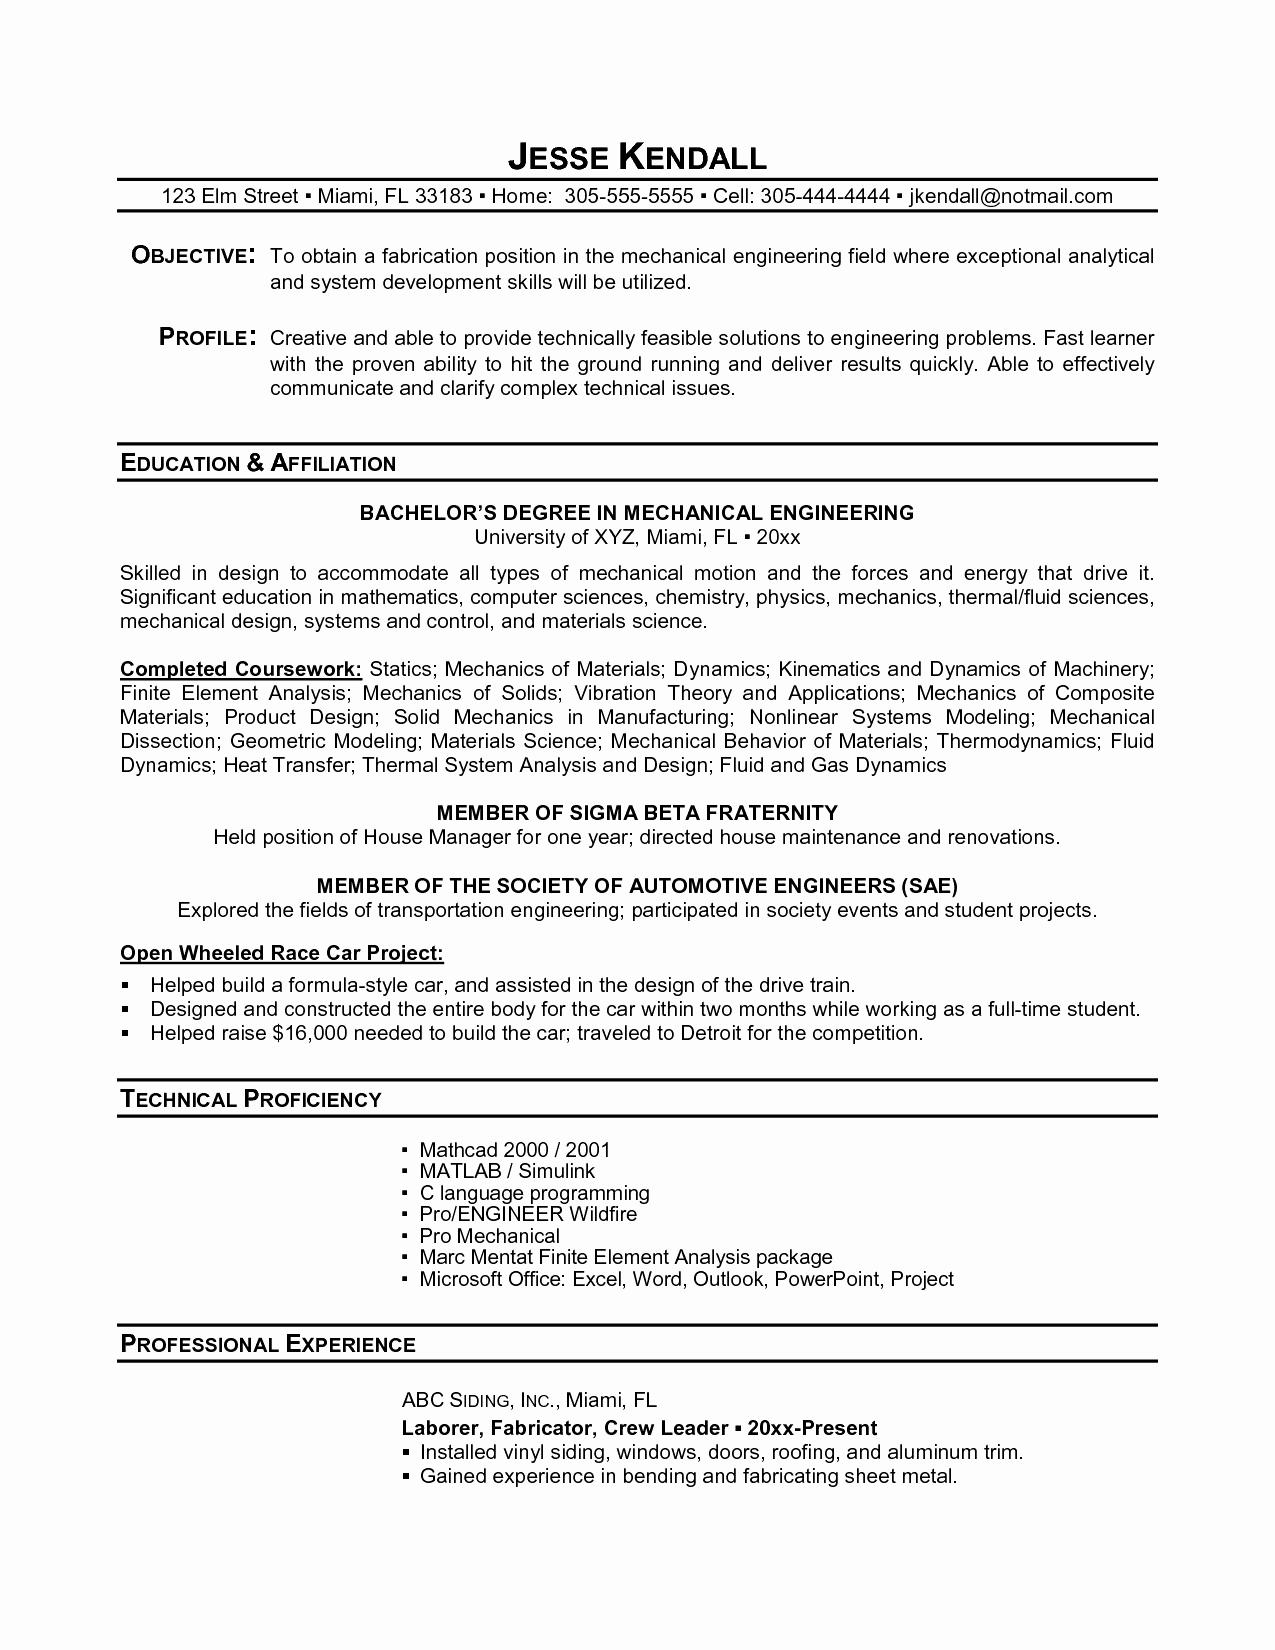 Controller Resume Template - Resume Templates Find Resume Templates